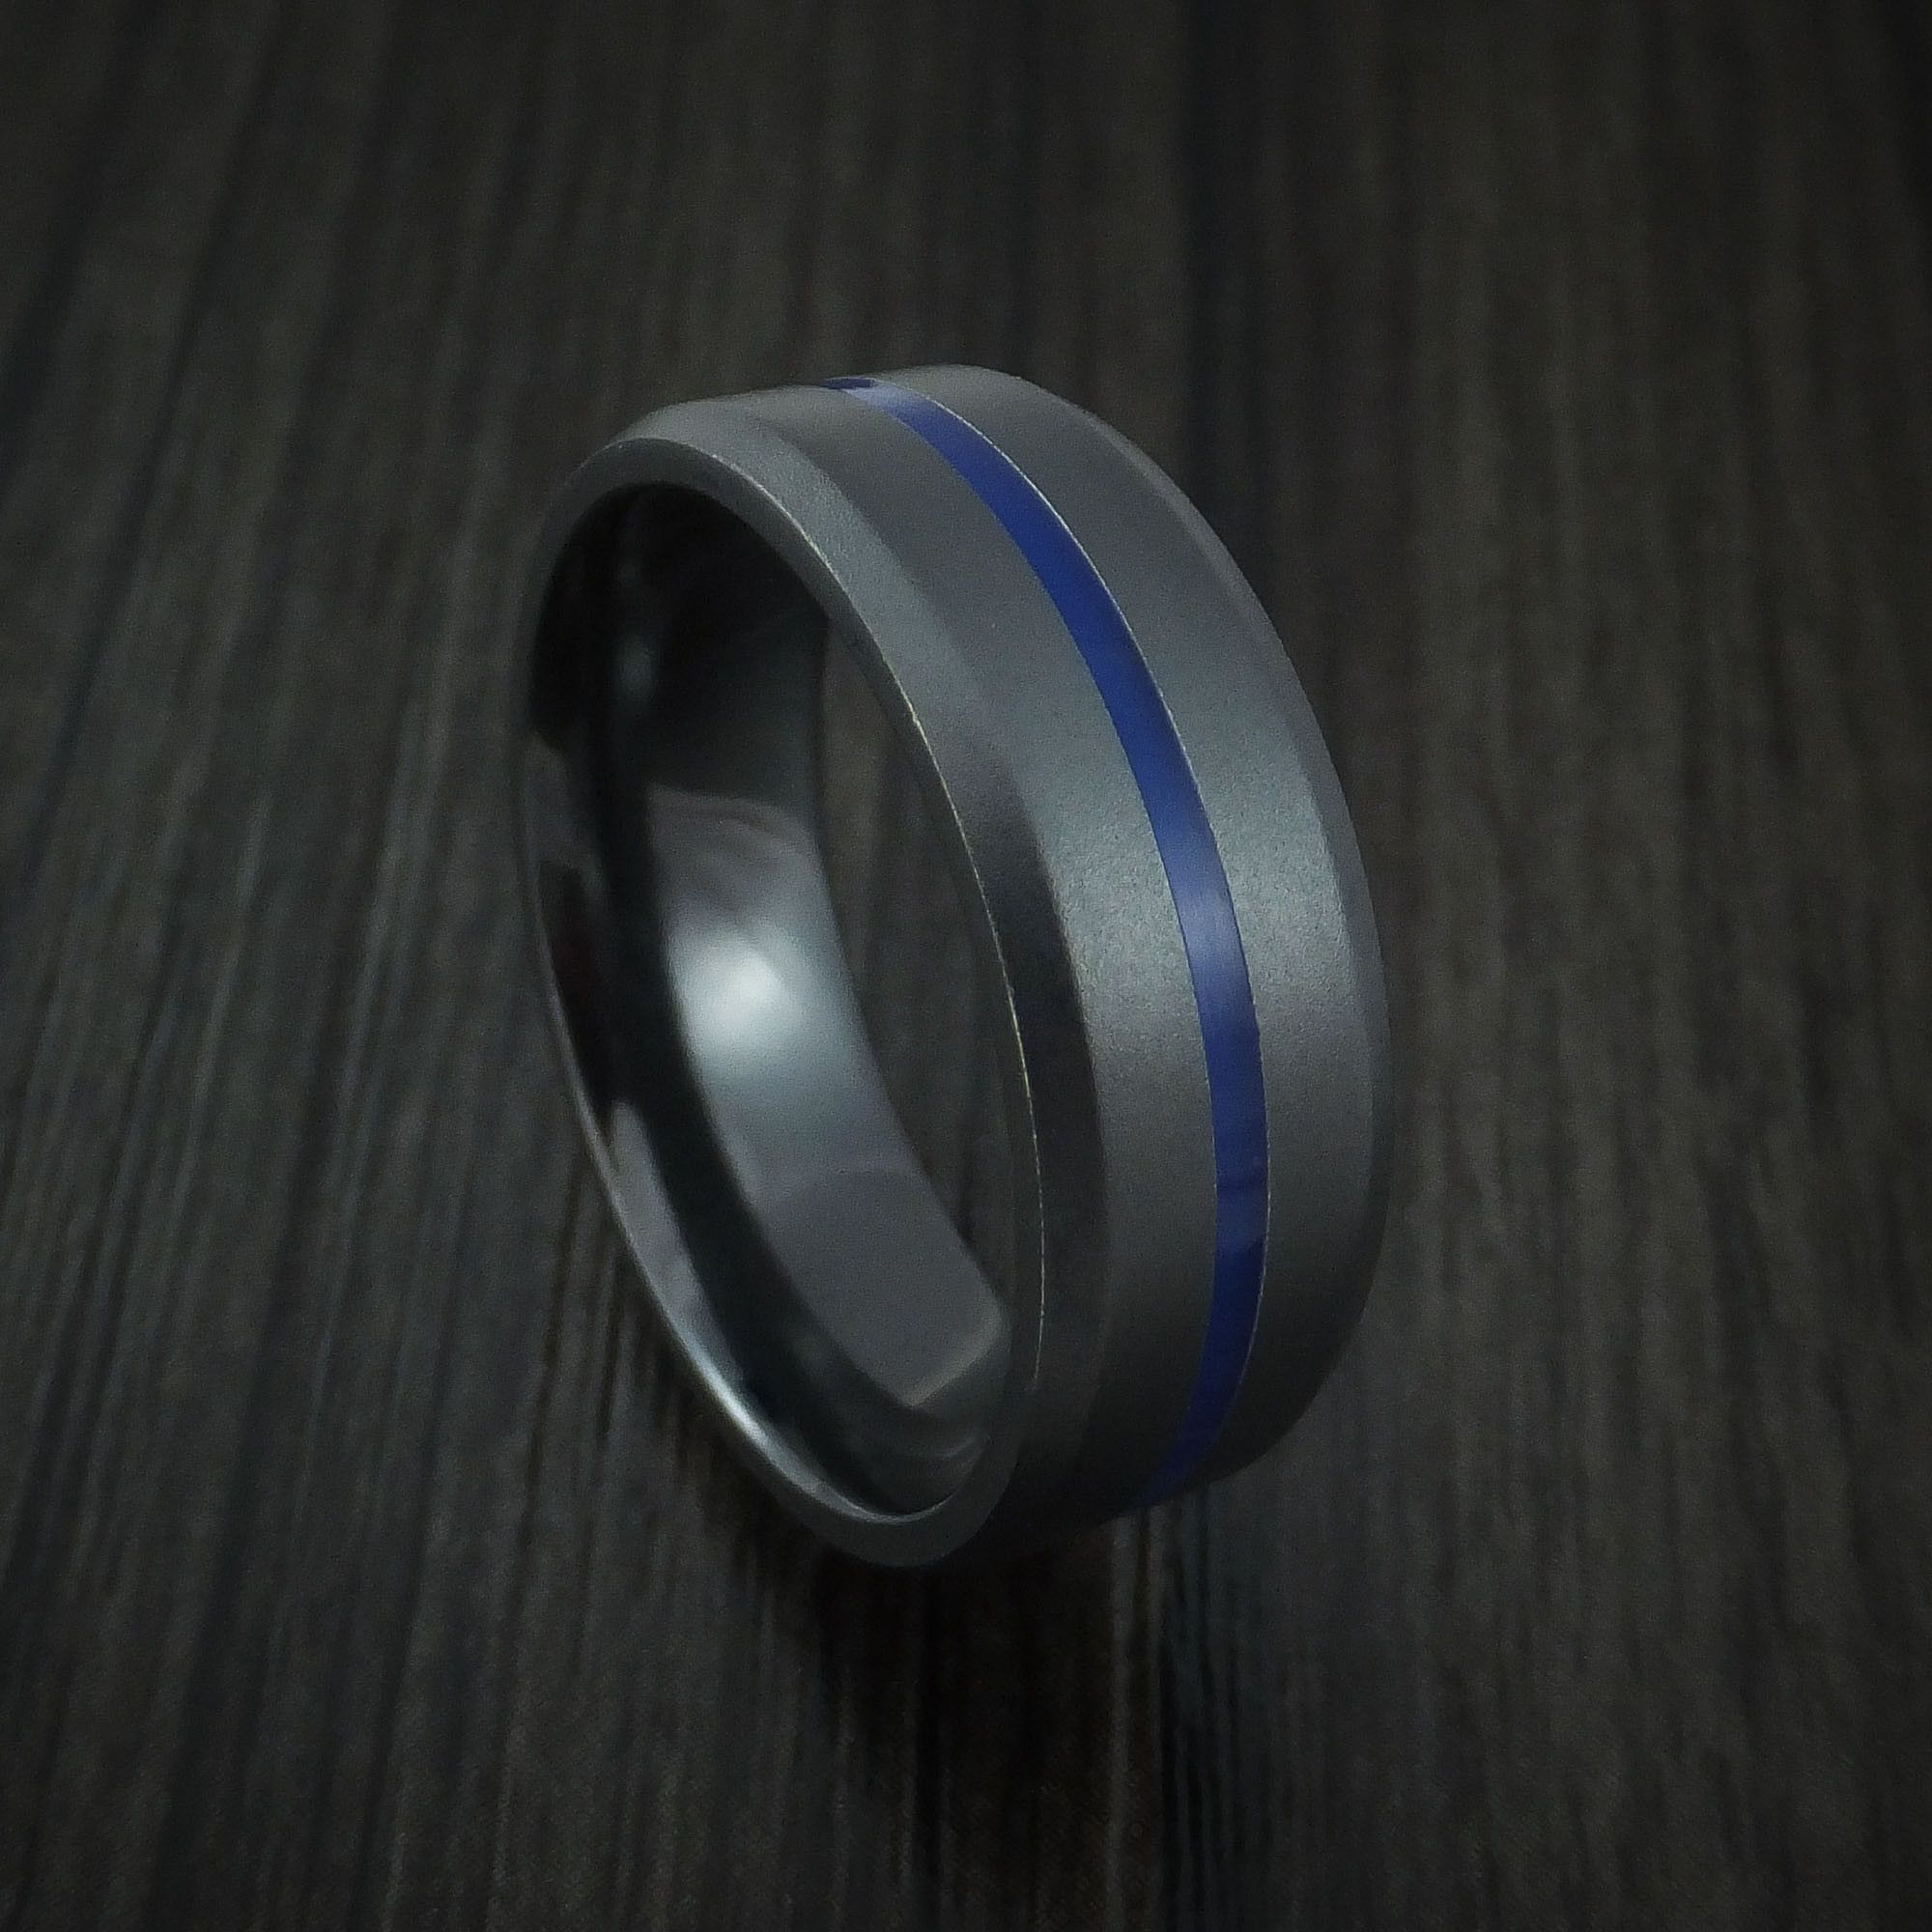 Black Zirconium Ring With Center Blue Inlay Thin Blue Line Wedding Band Genuine Craftsman Titanium Wedding Rings Expensive Wedding Rings Zirconium Wedding Ring